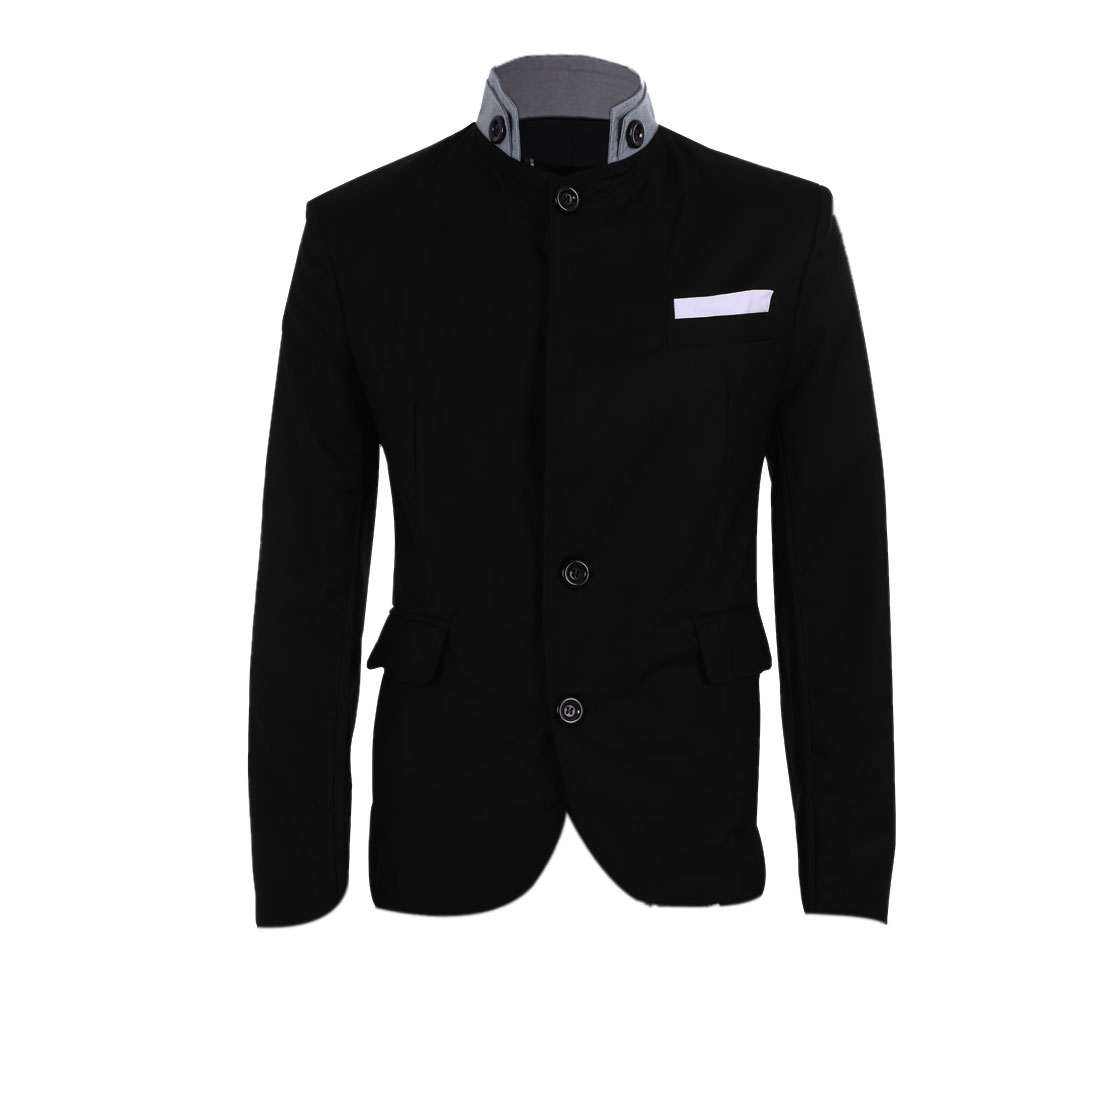 Black M Front Button Closure Two Flap Pockets Design Men Casual Blazer